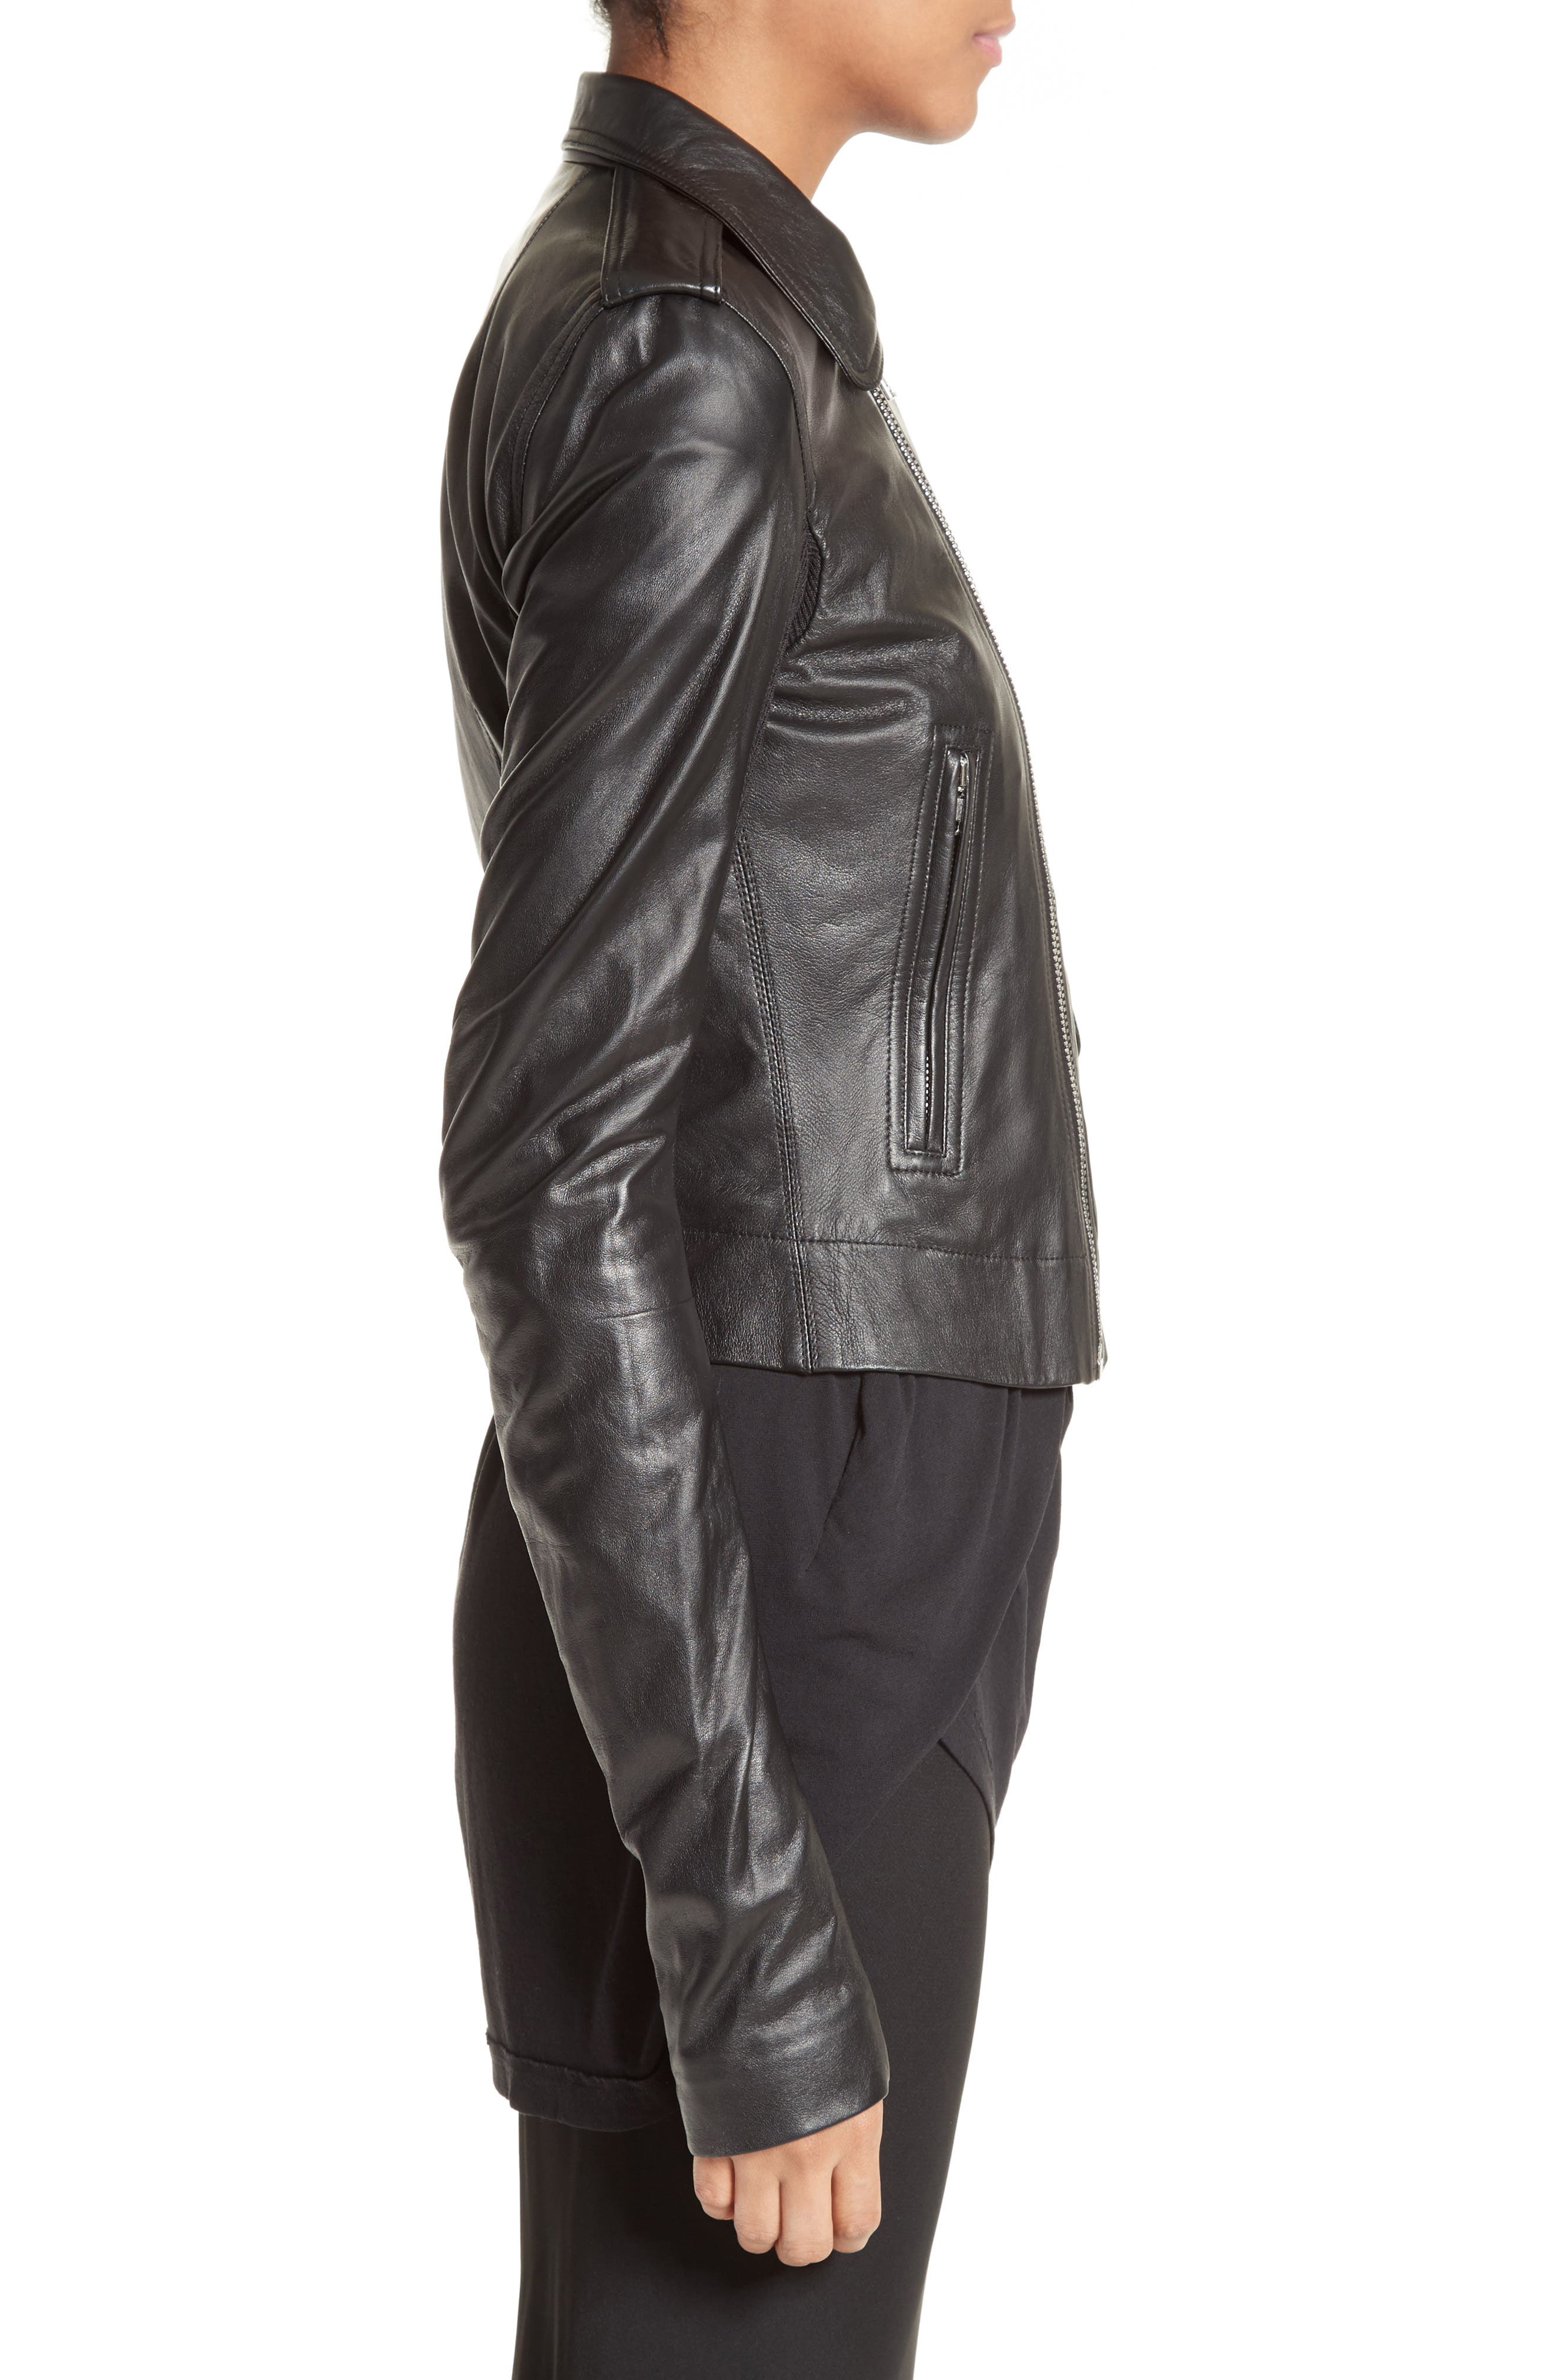 Stooges Leather Jacket,                             Alternate thumbnail 3, color,                             009